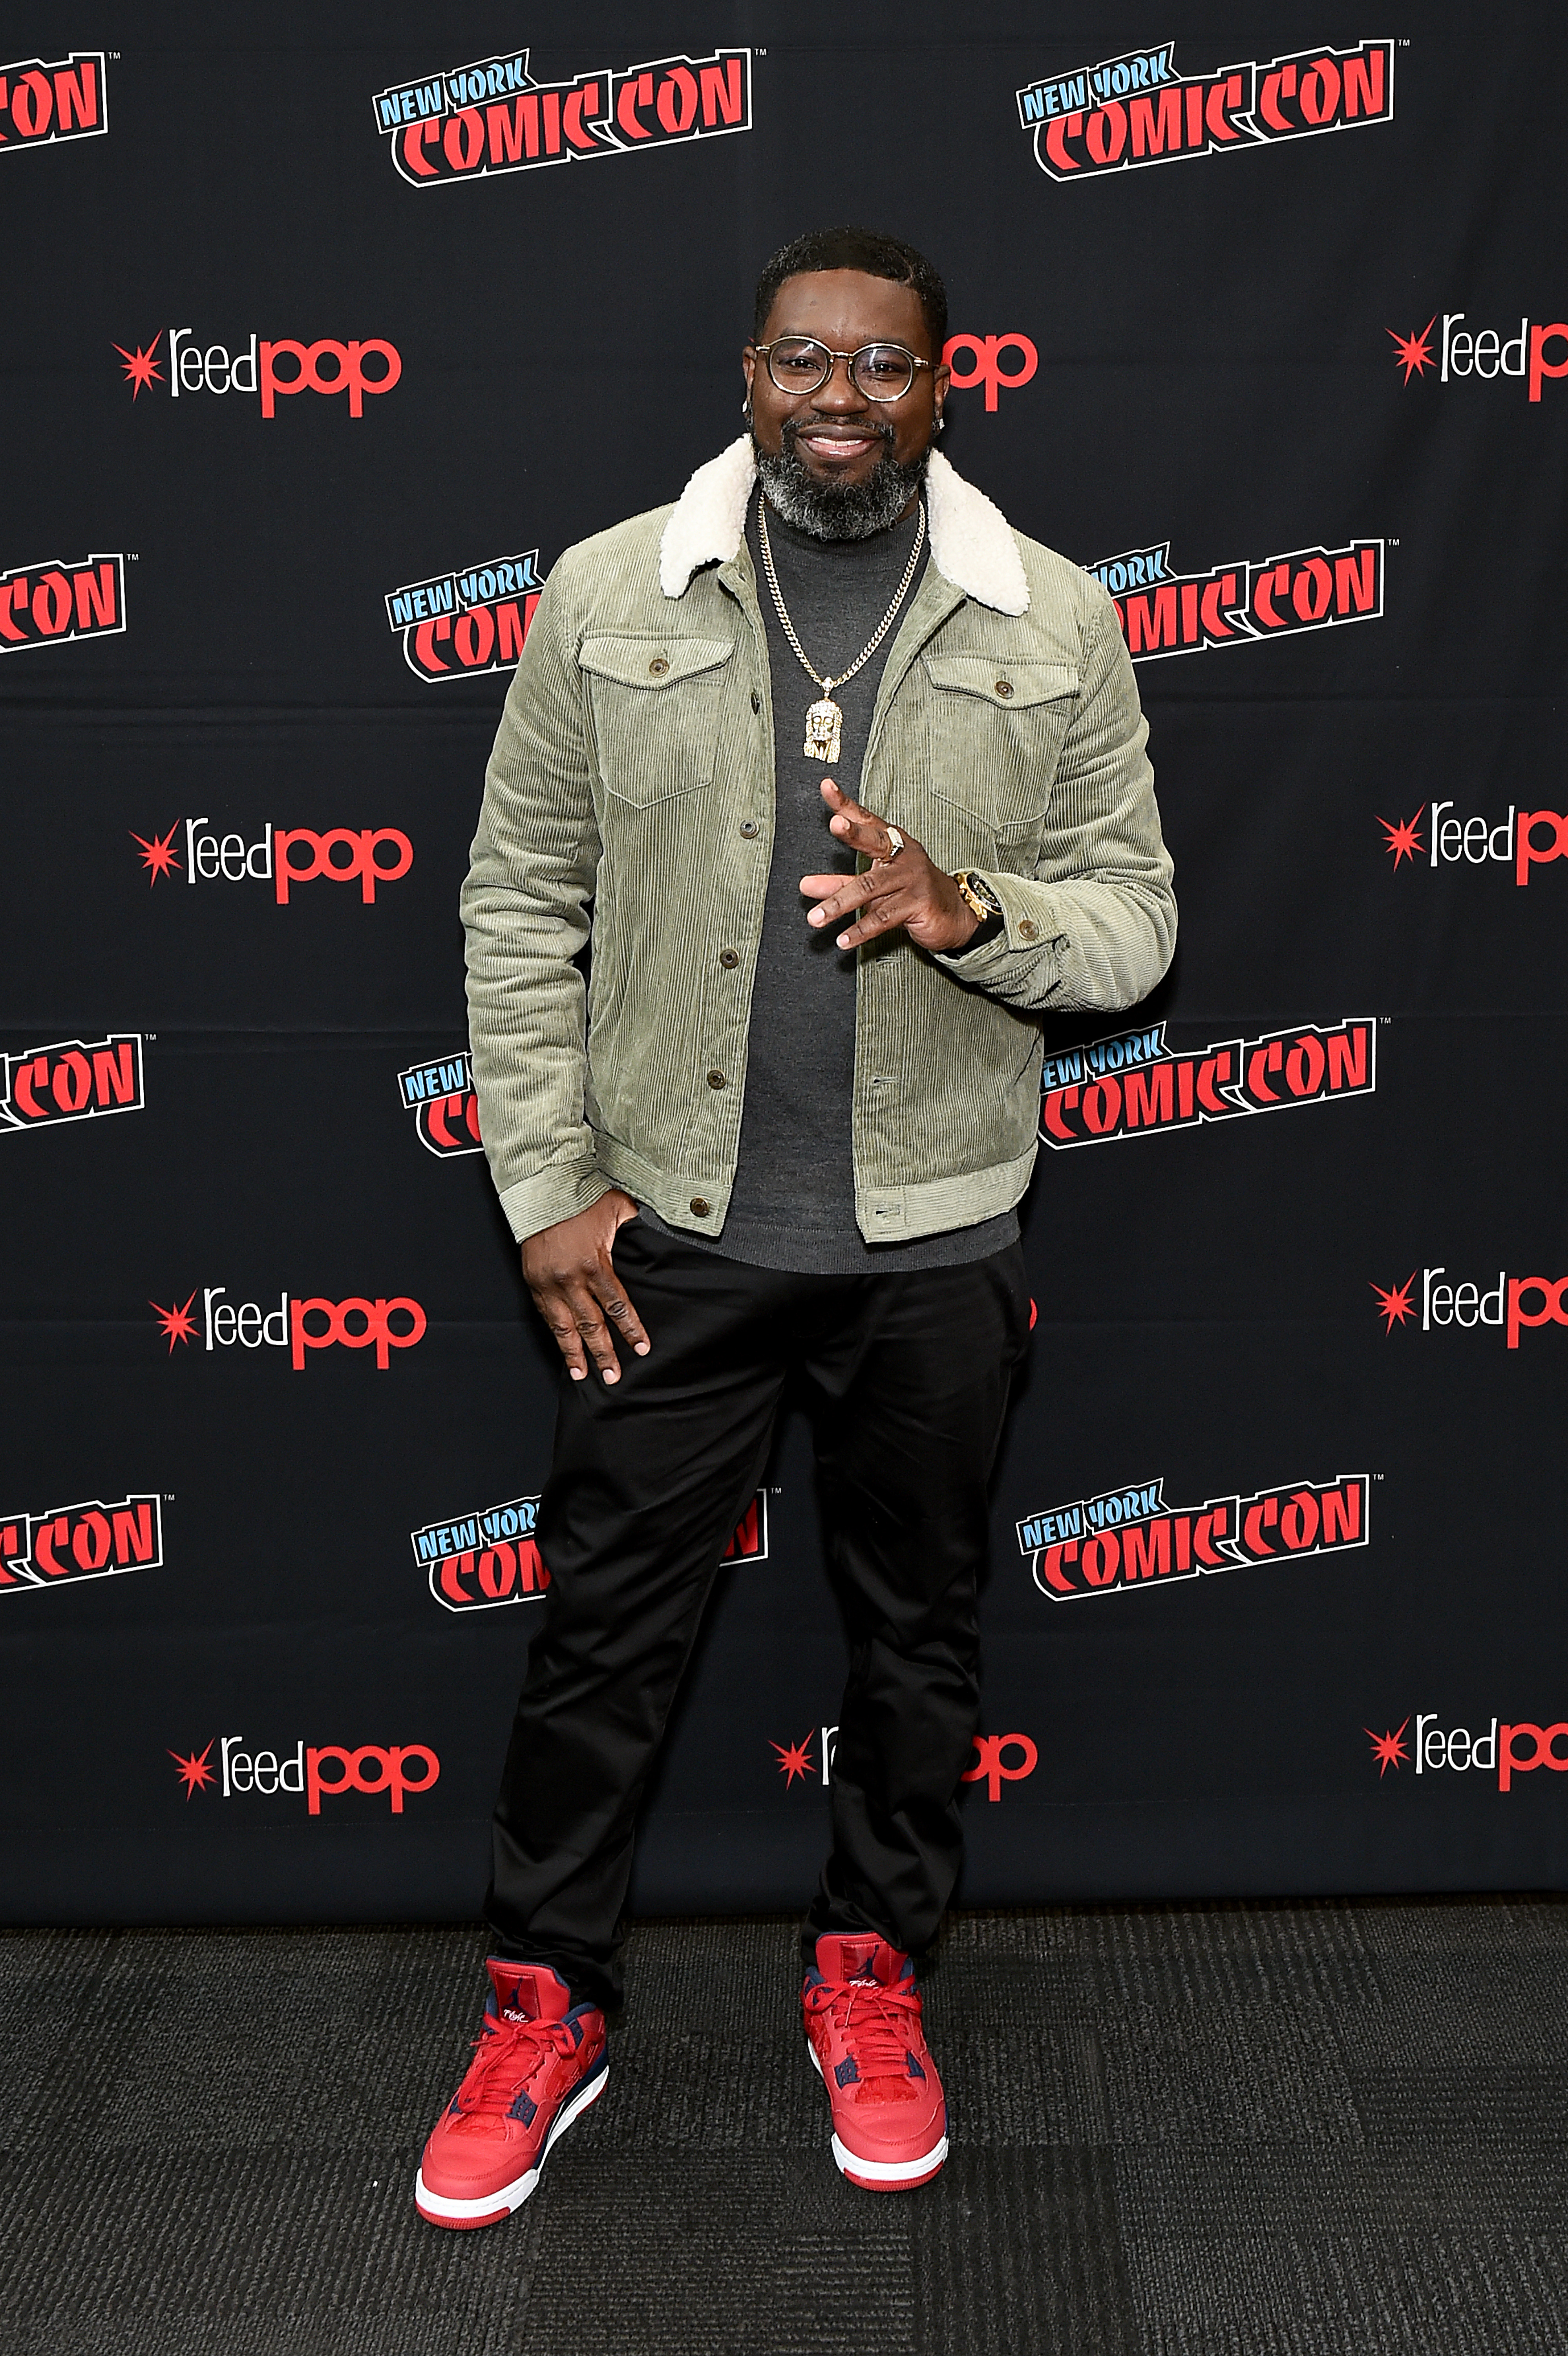 Lil Rel Howery at an event for Free Guy (2021)